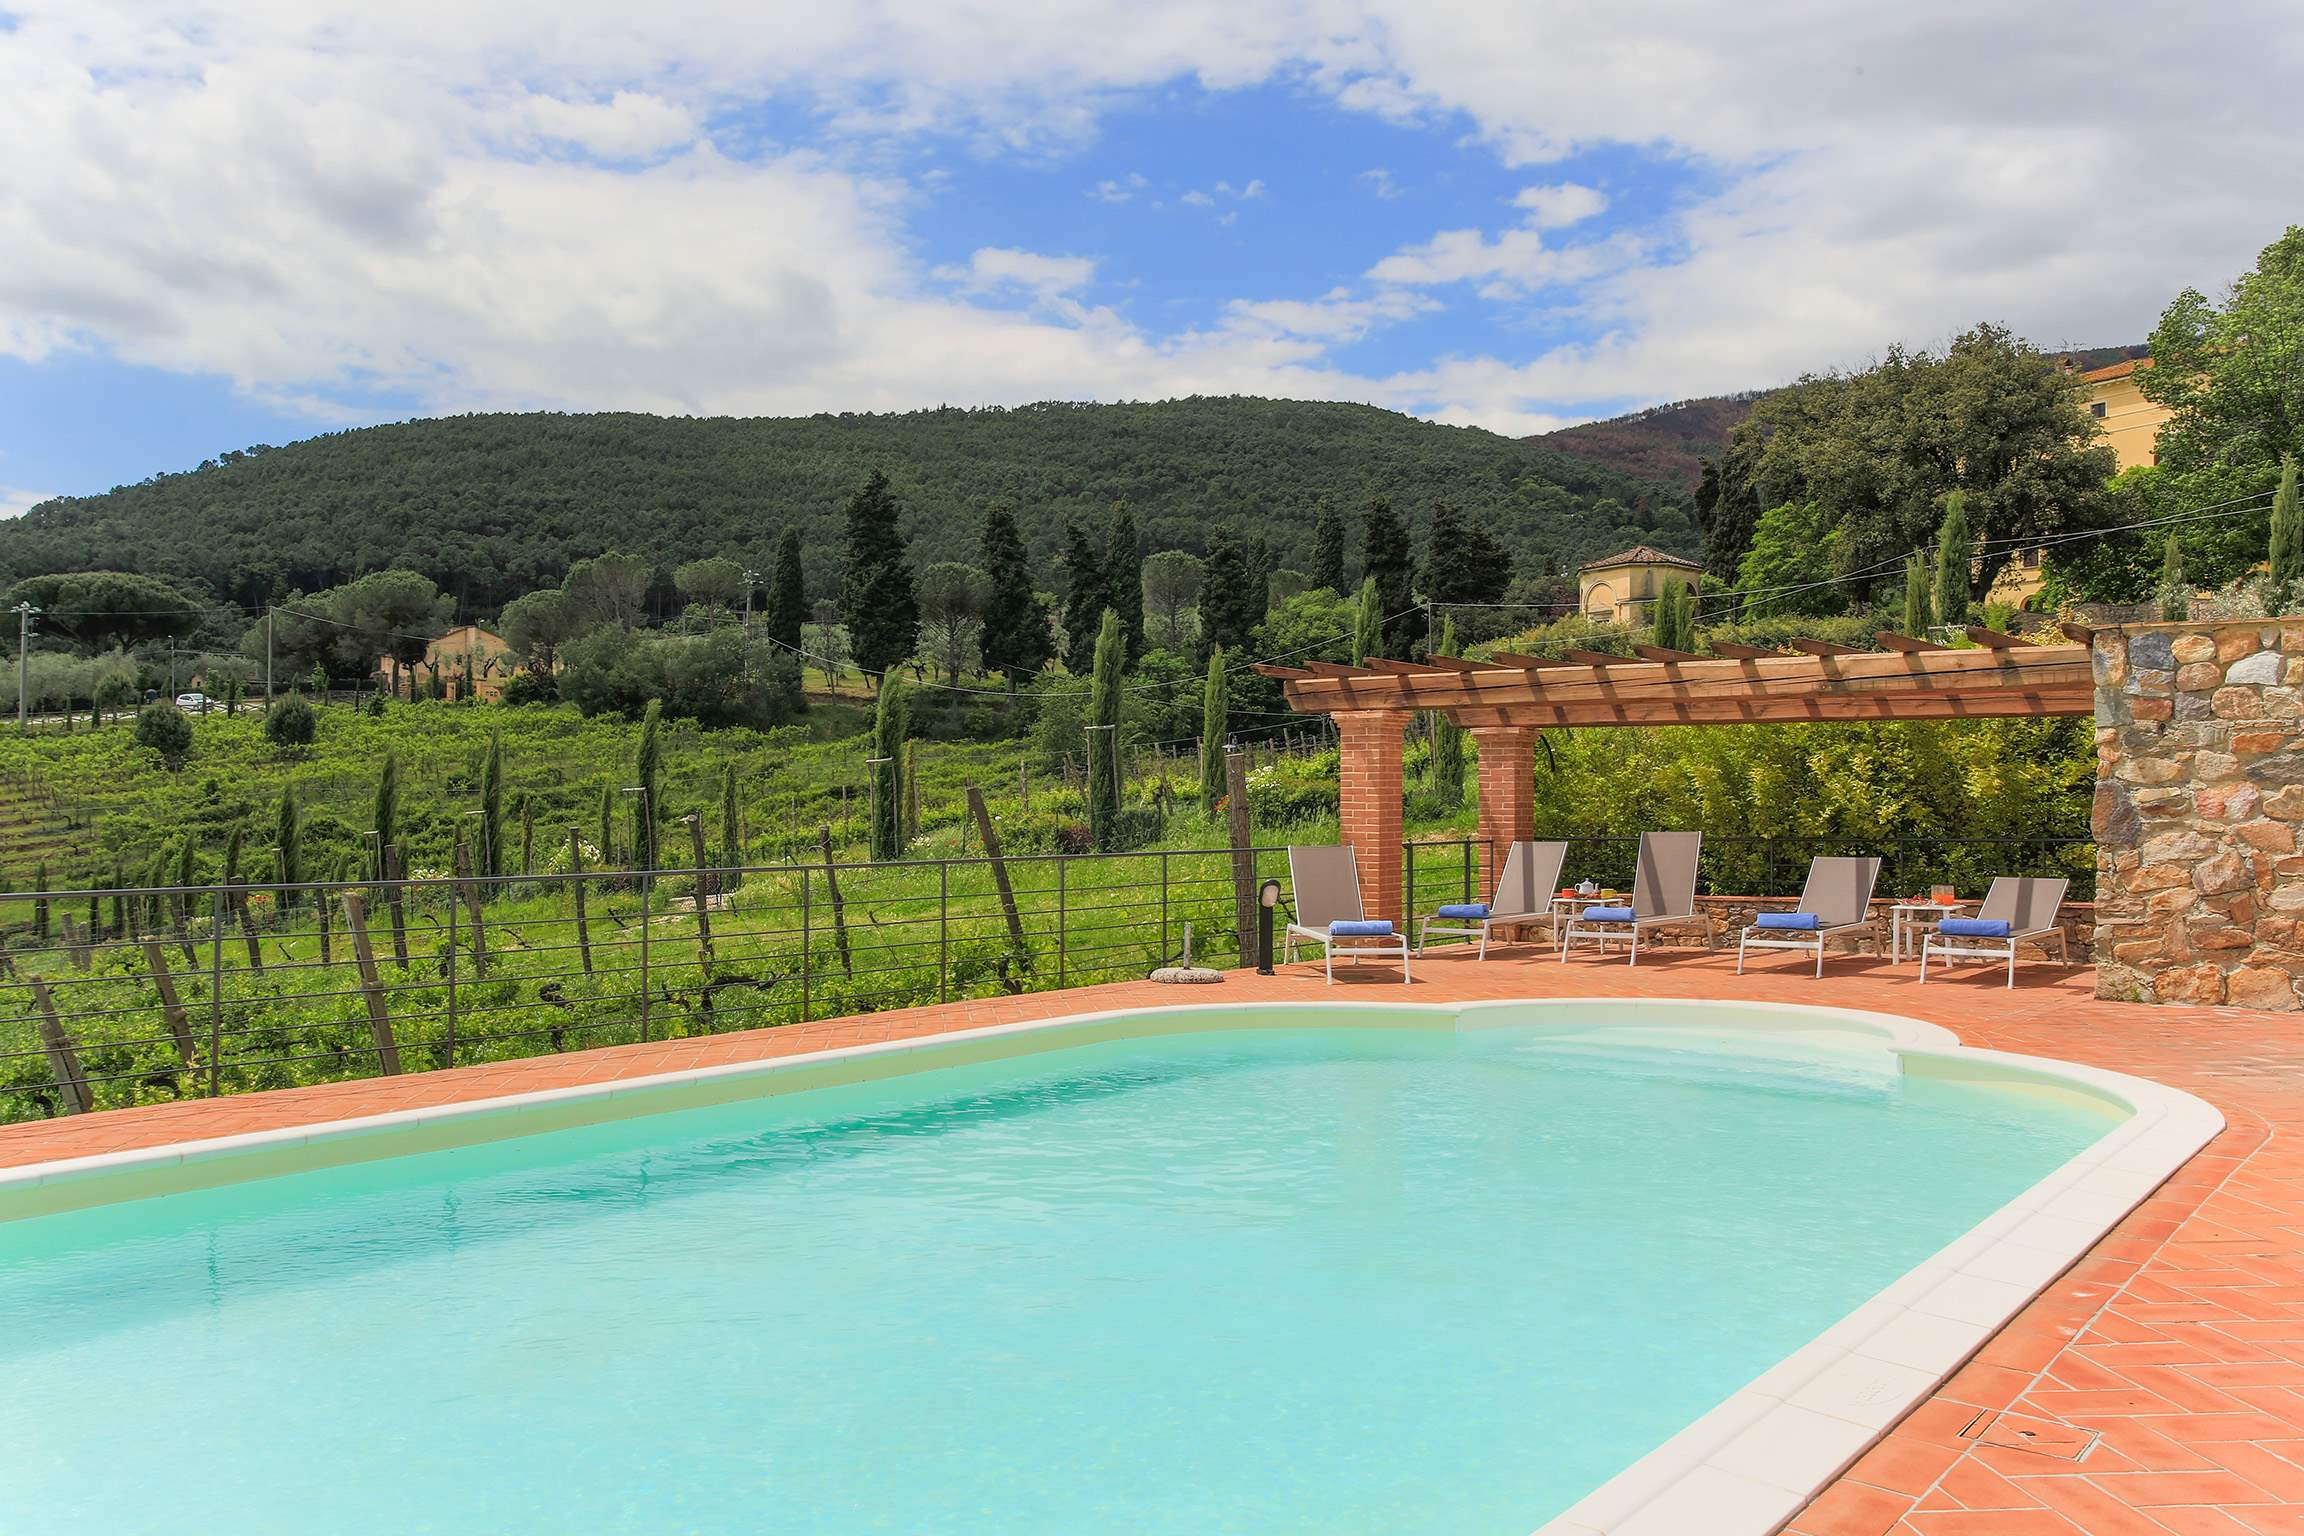 Casa Di Dante, 3 bedroom villa in North Tuscany - Pisa & Lucca Area, Tuscany Photo #7